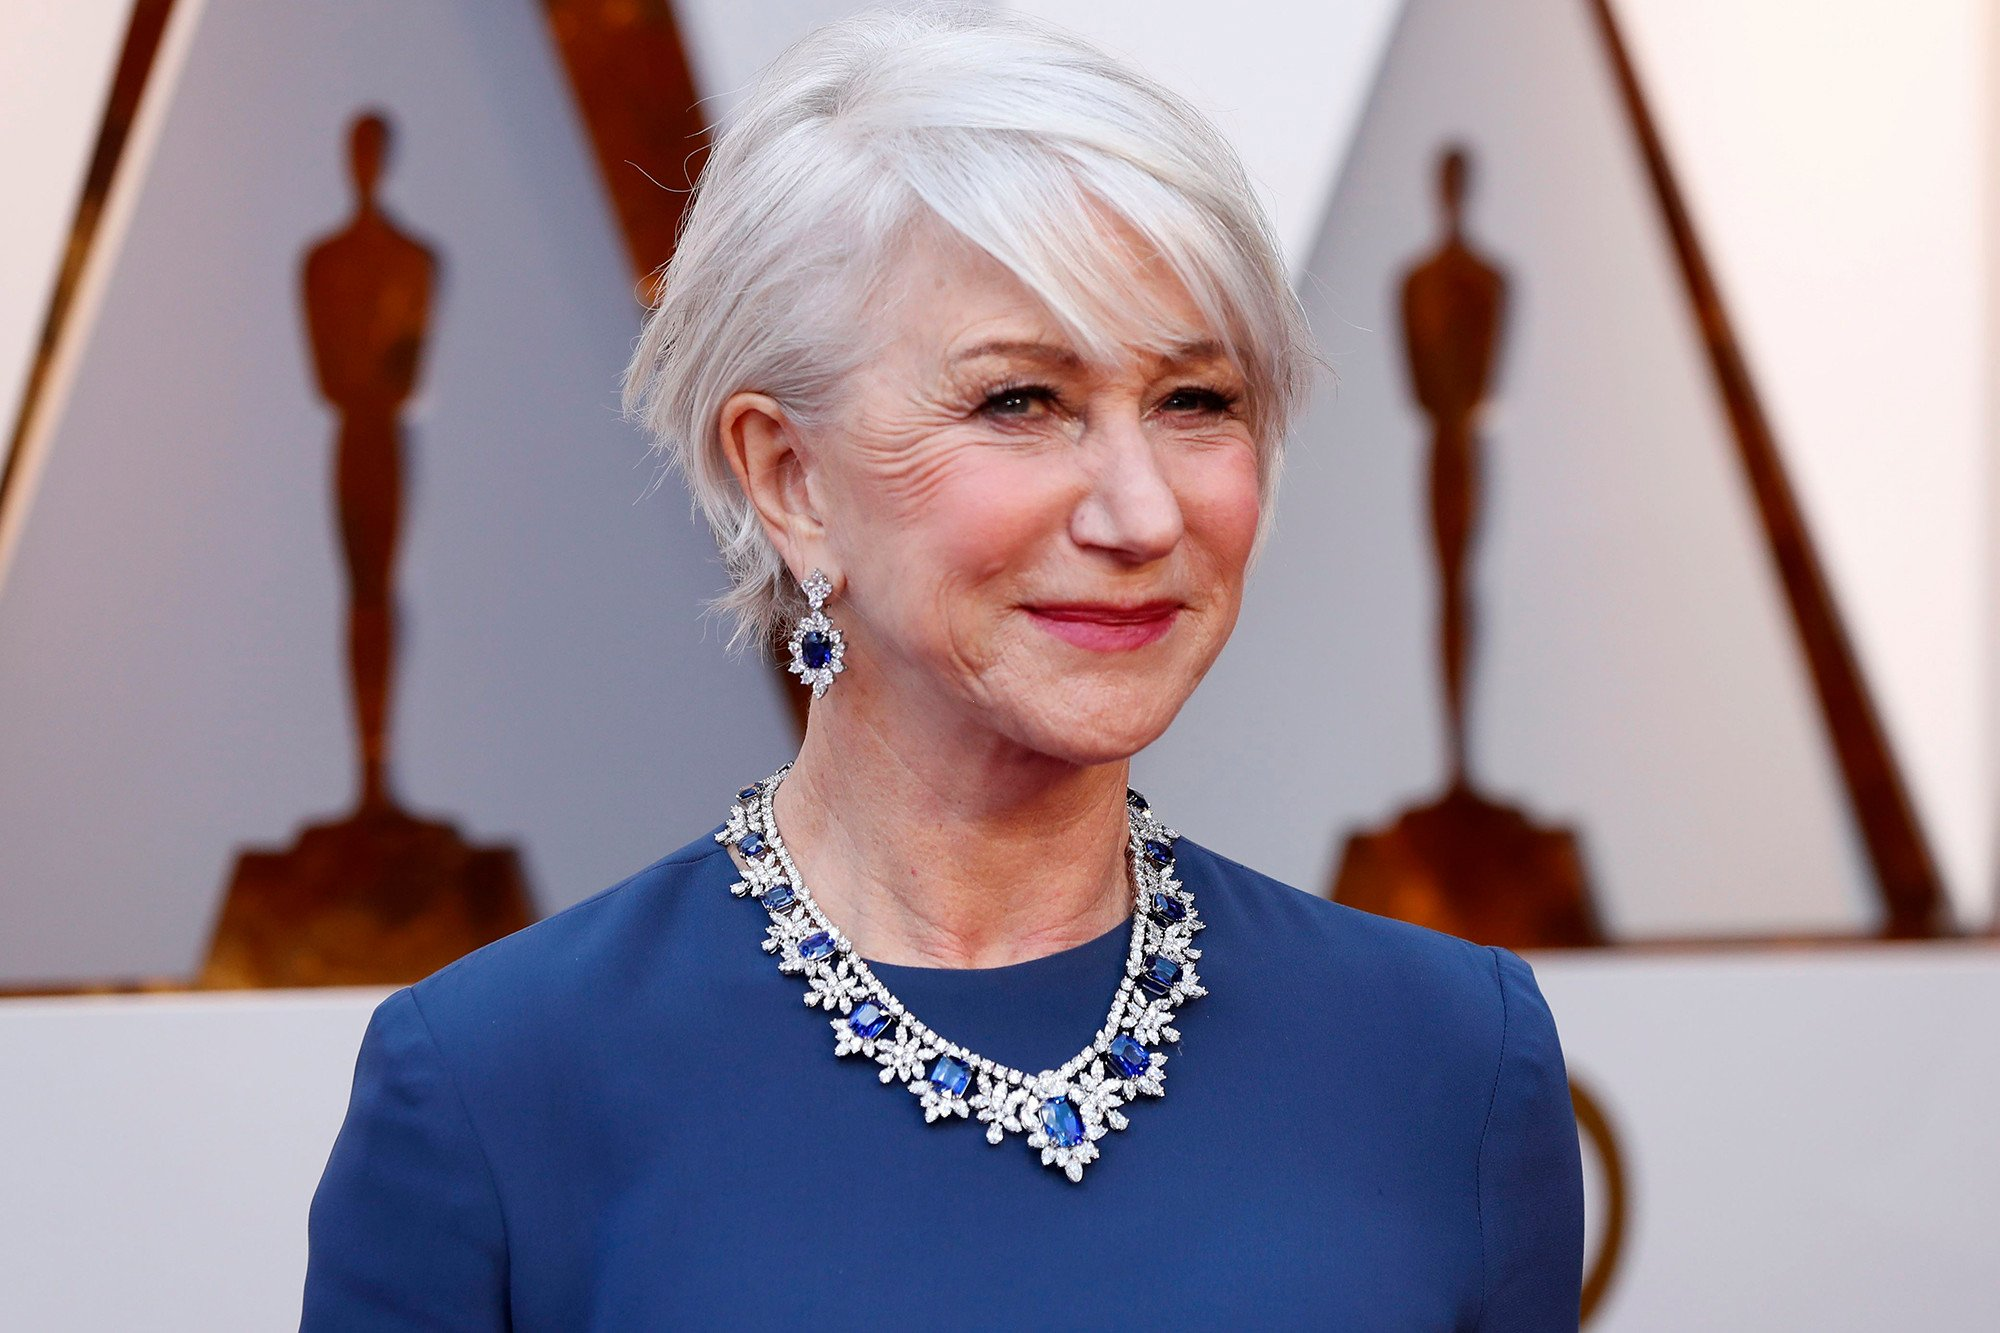 Helen Mirren at the oscars 2018 wearing a sapphire diamond necklace